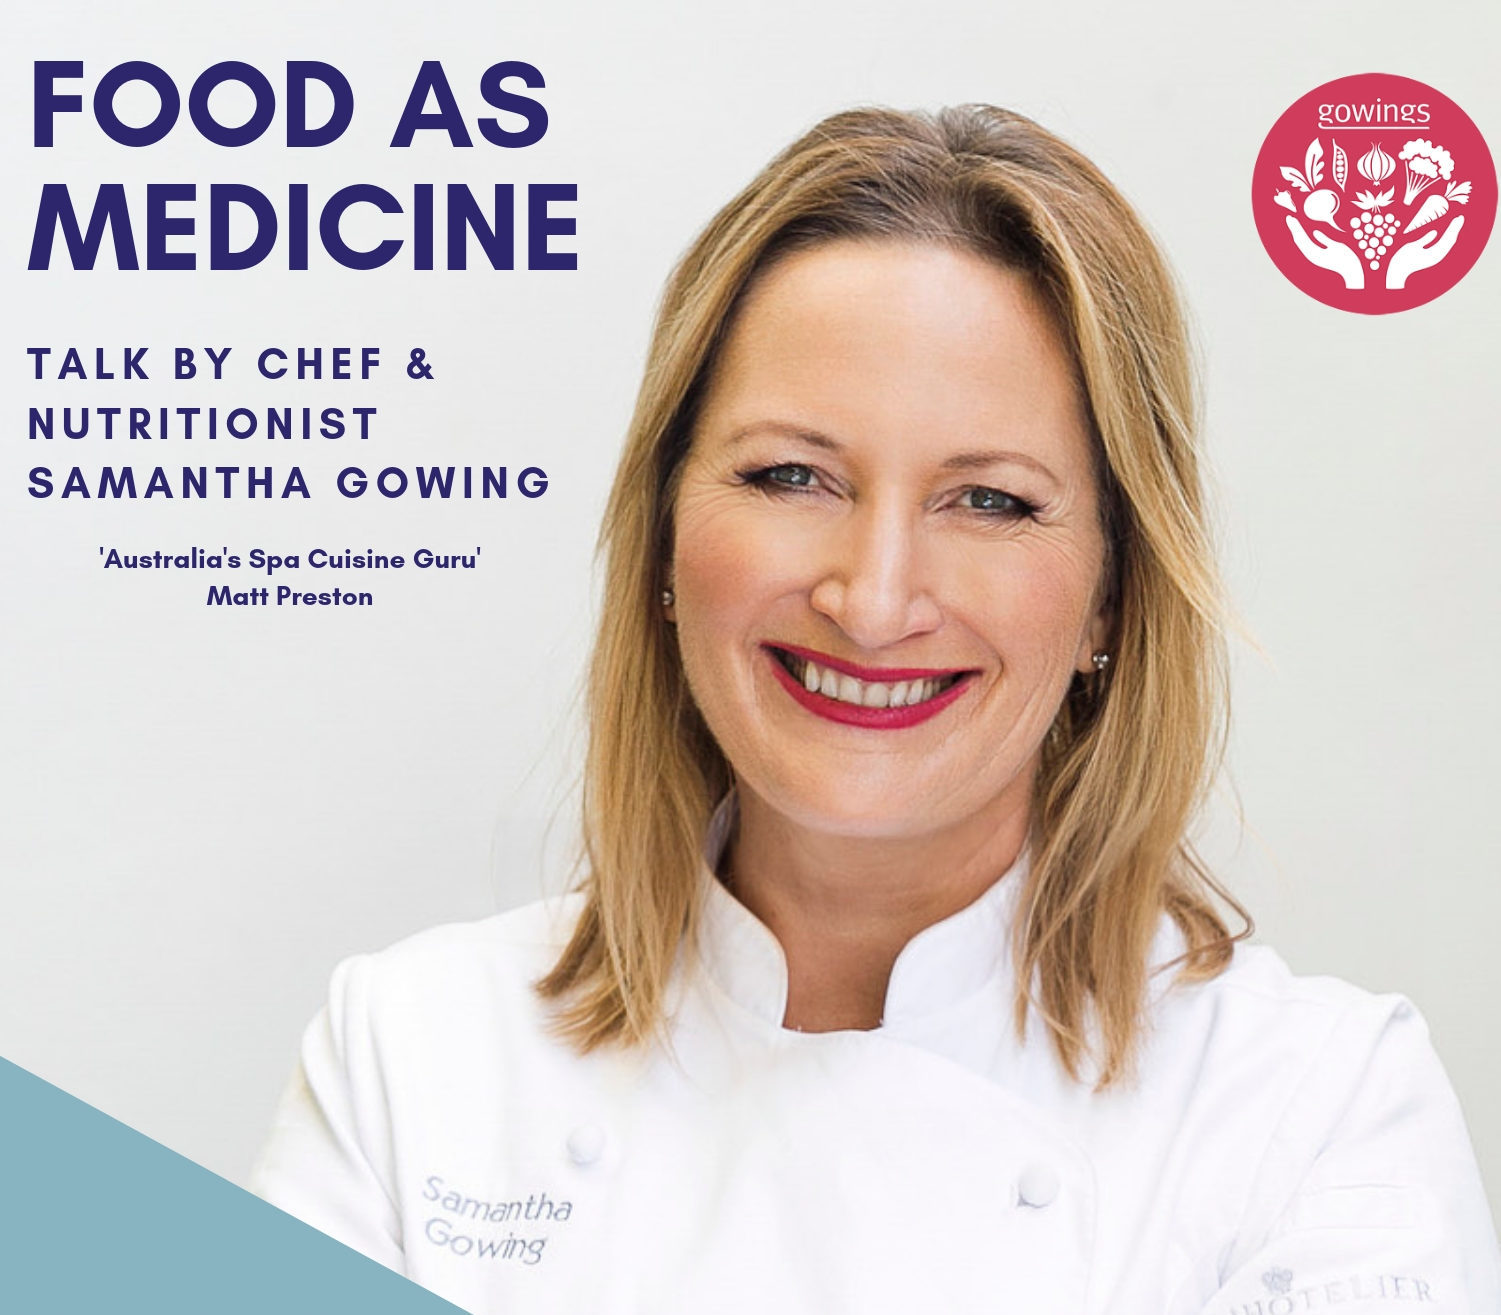 Food as Medicine with Sam Gowing